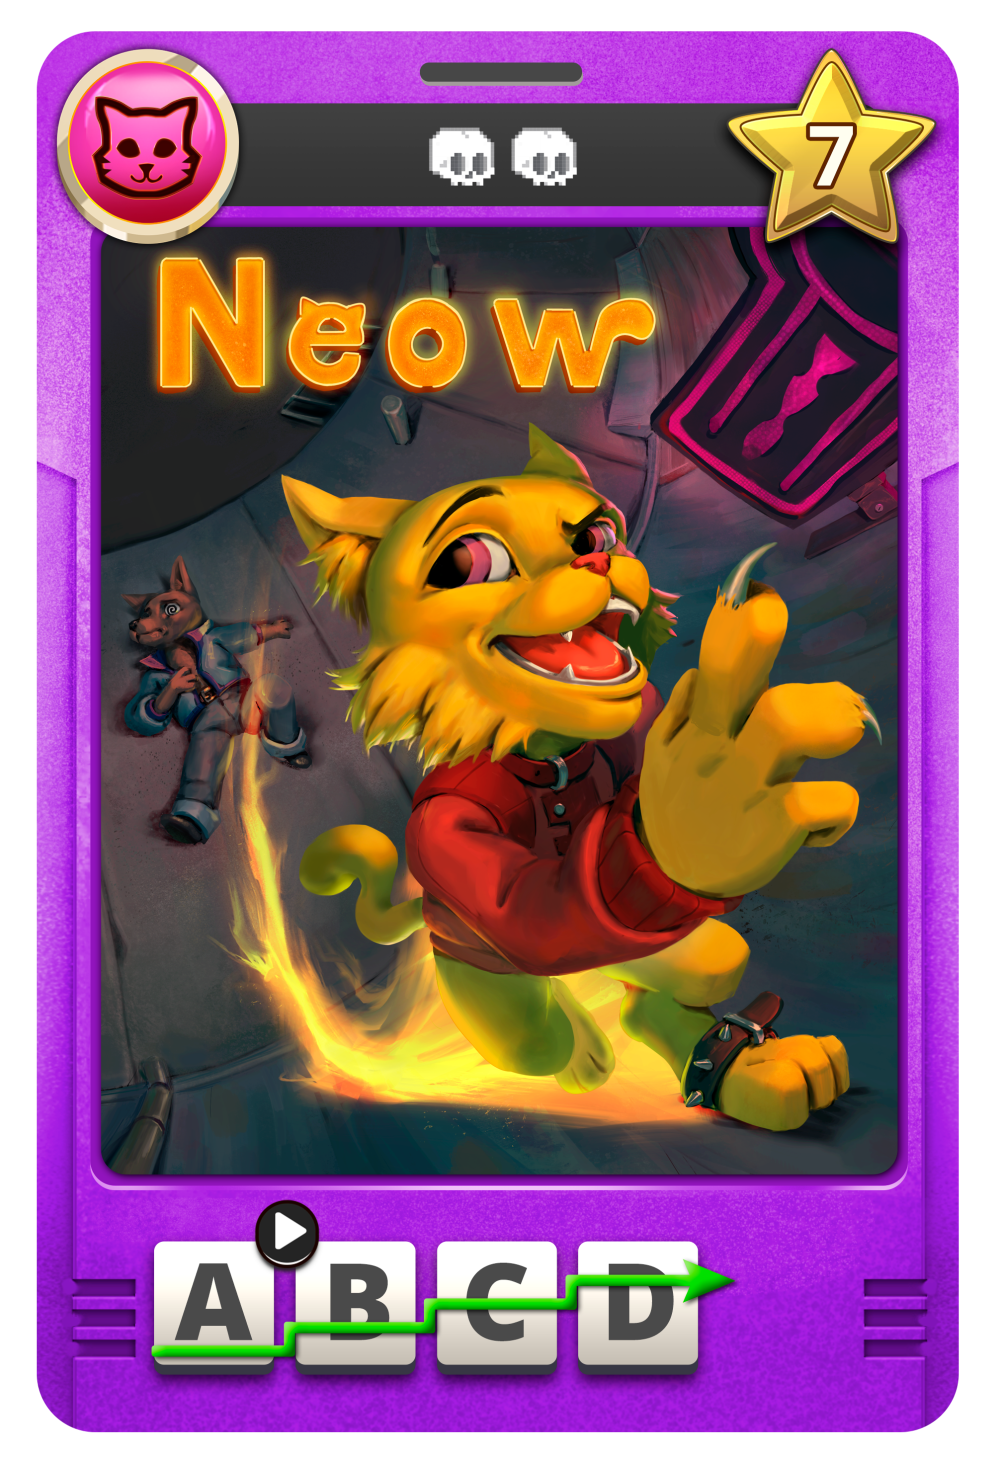 01 - Neow